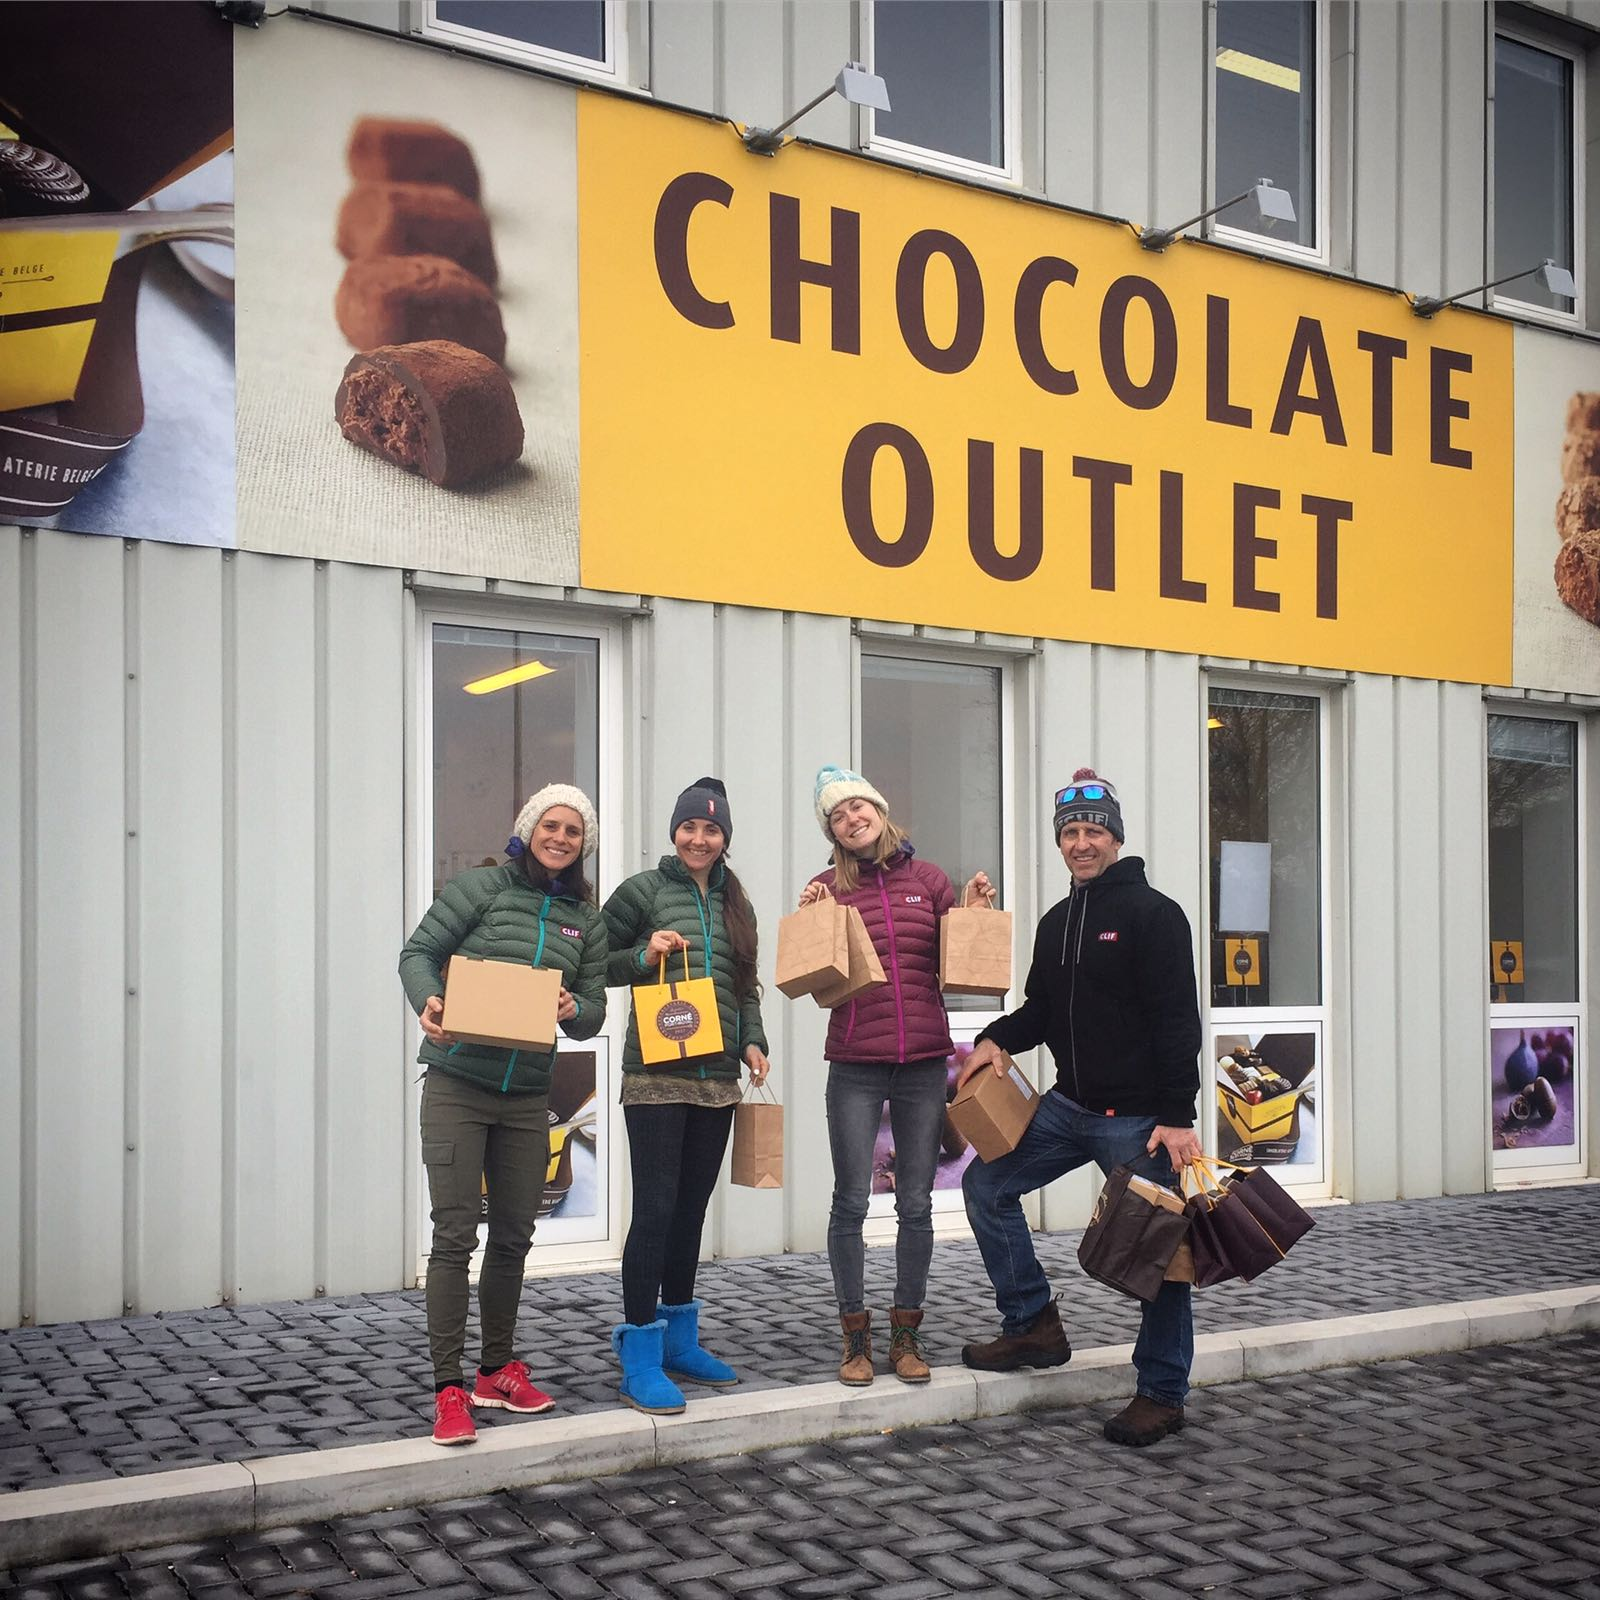 Necessary visit to the Chocolate outlet in Belgium.